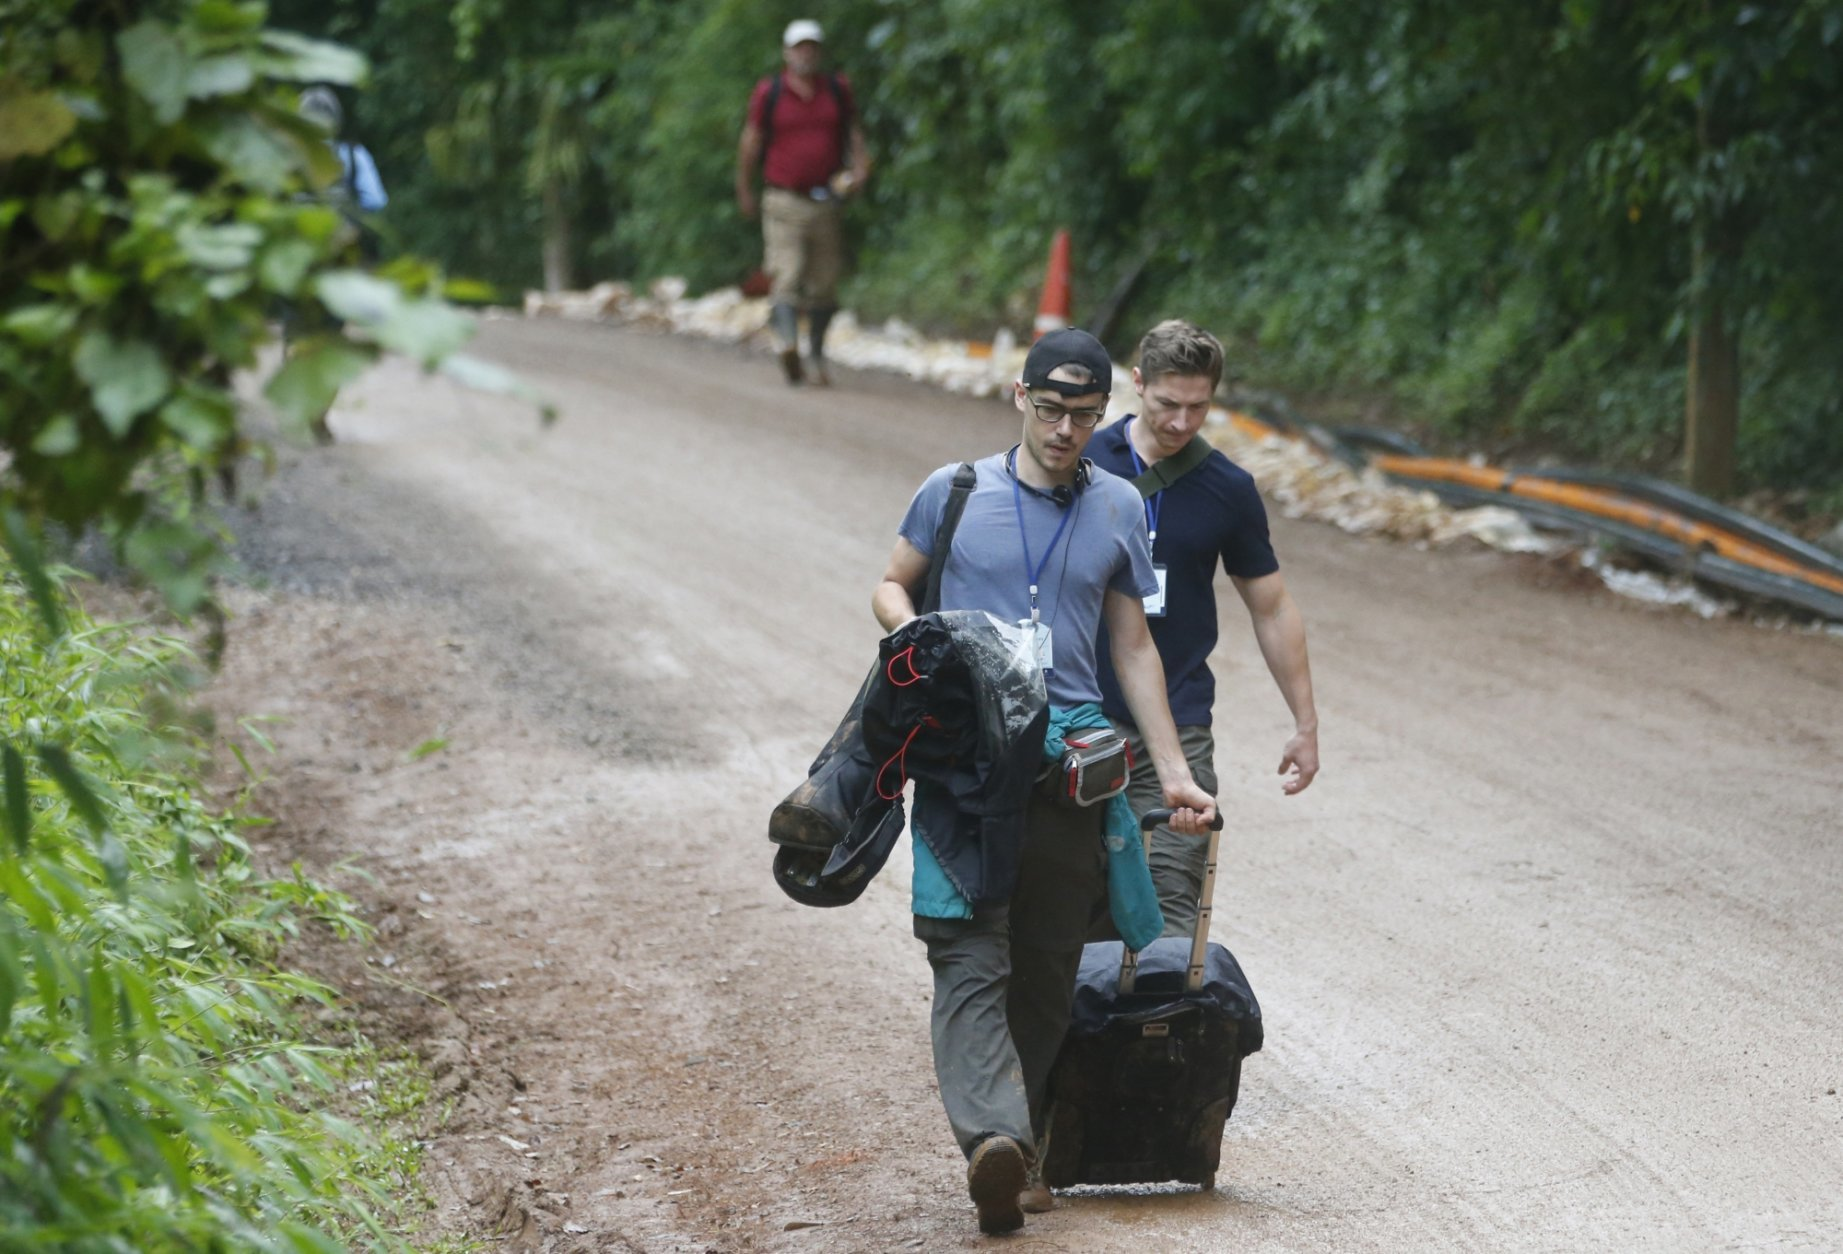 Media staff leave the area around the entrance of the cave where 12 boys and their soccer coach have been trapped for two weeks, in Mae Sai, Chiang Rai province, in northern Thailand Sunday, July 8, 2018. Thai authorities asked media to leave the area, fueling speculation on Sunday morning that a rescue mission could be imminent. (AP Photo/Sakchai Lalit)